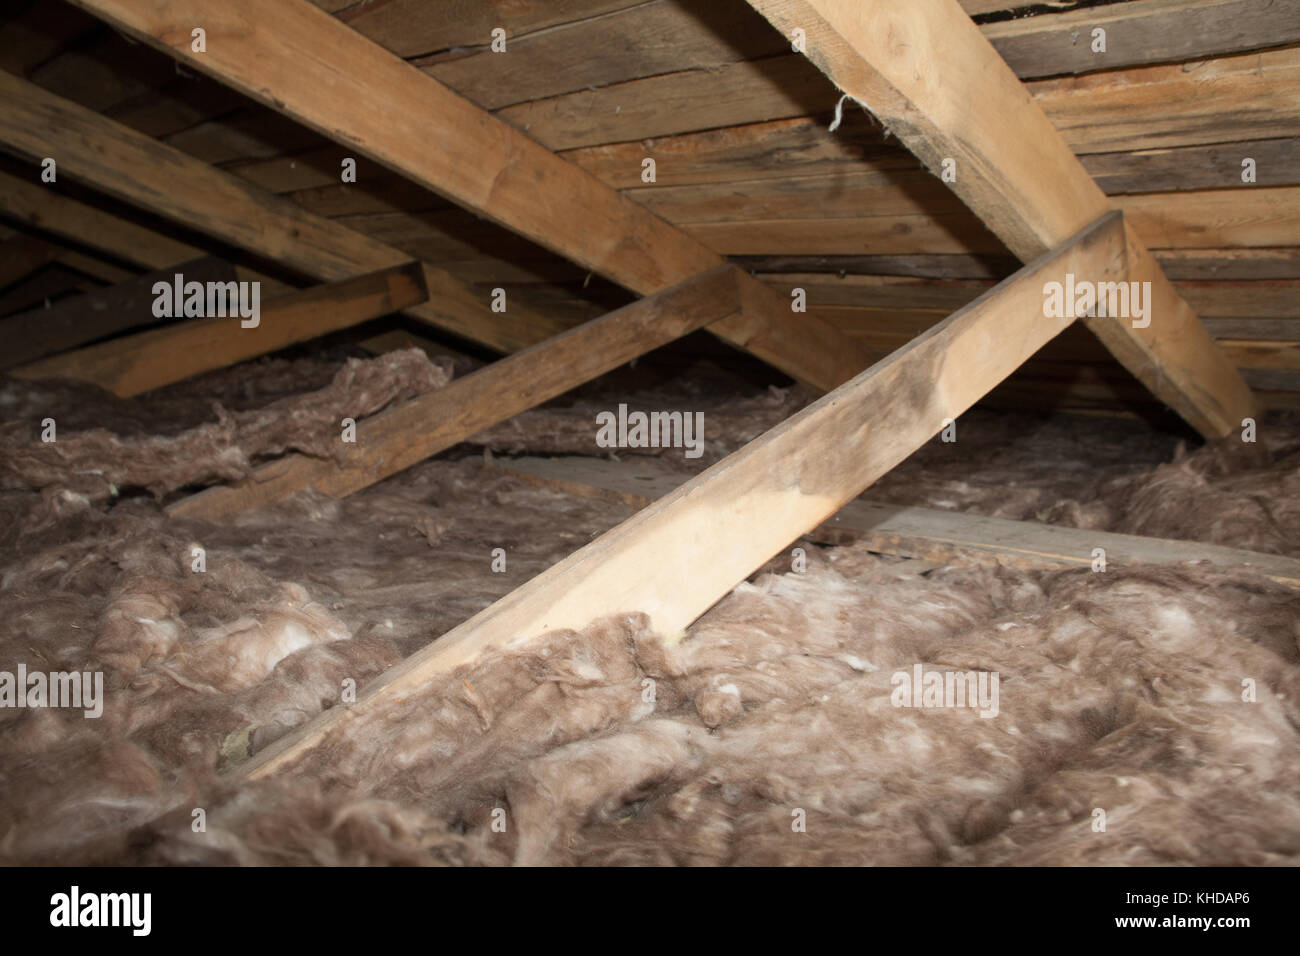 Roof insulation stock photos roof insulation stock for New home insulation